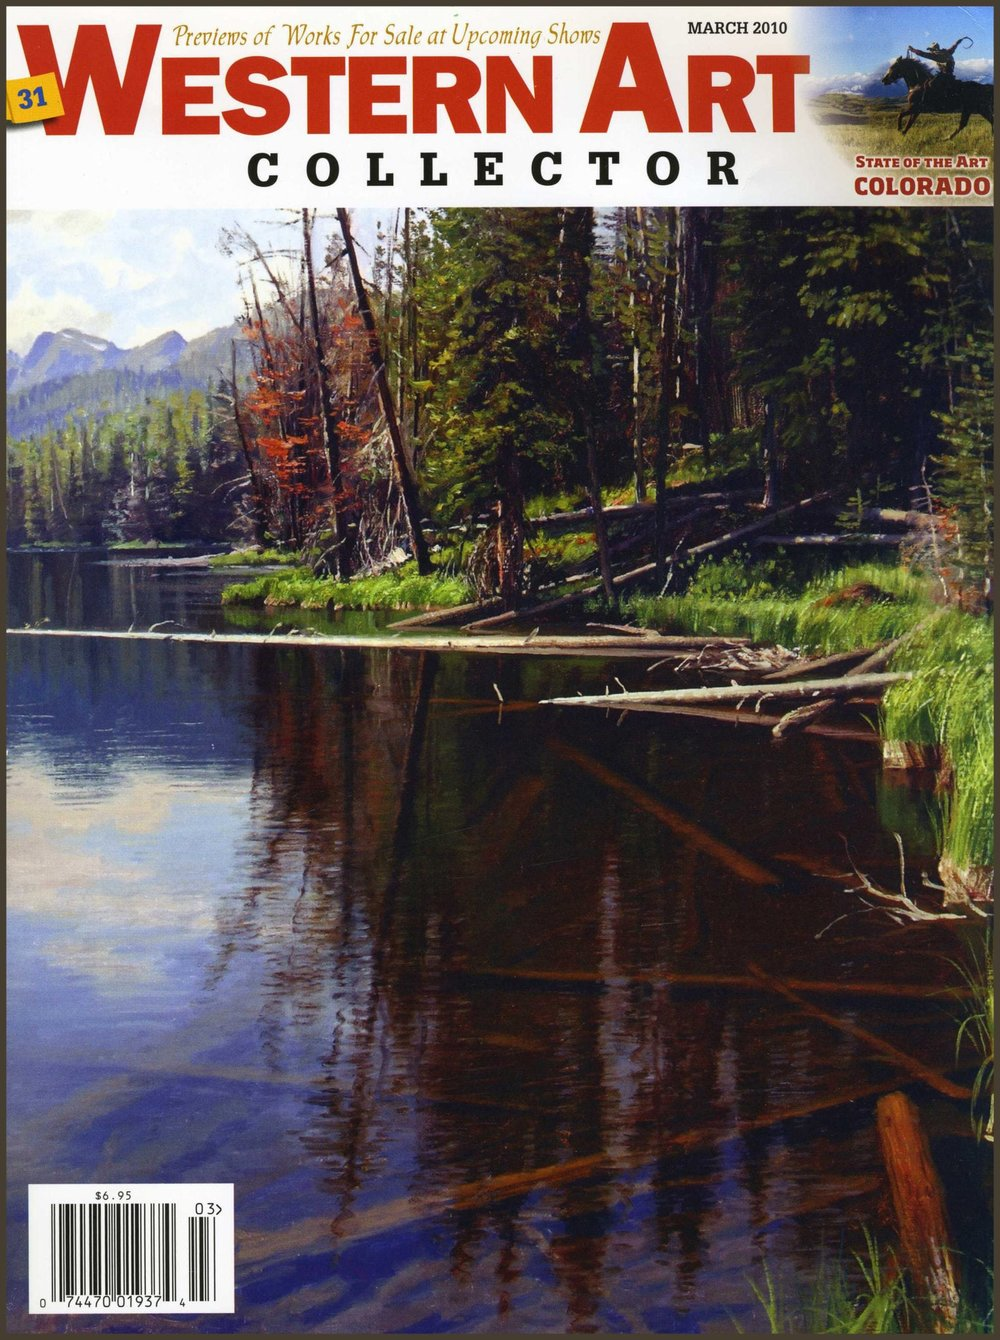 Western Art Collector | March 2010